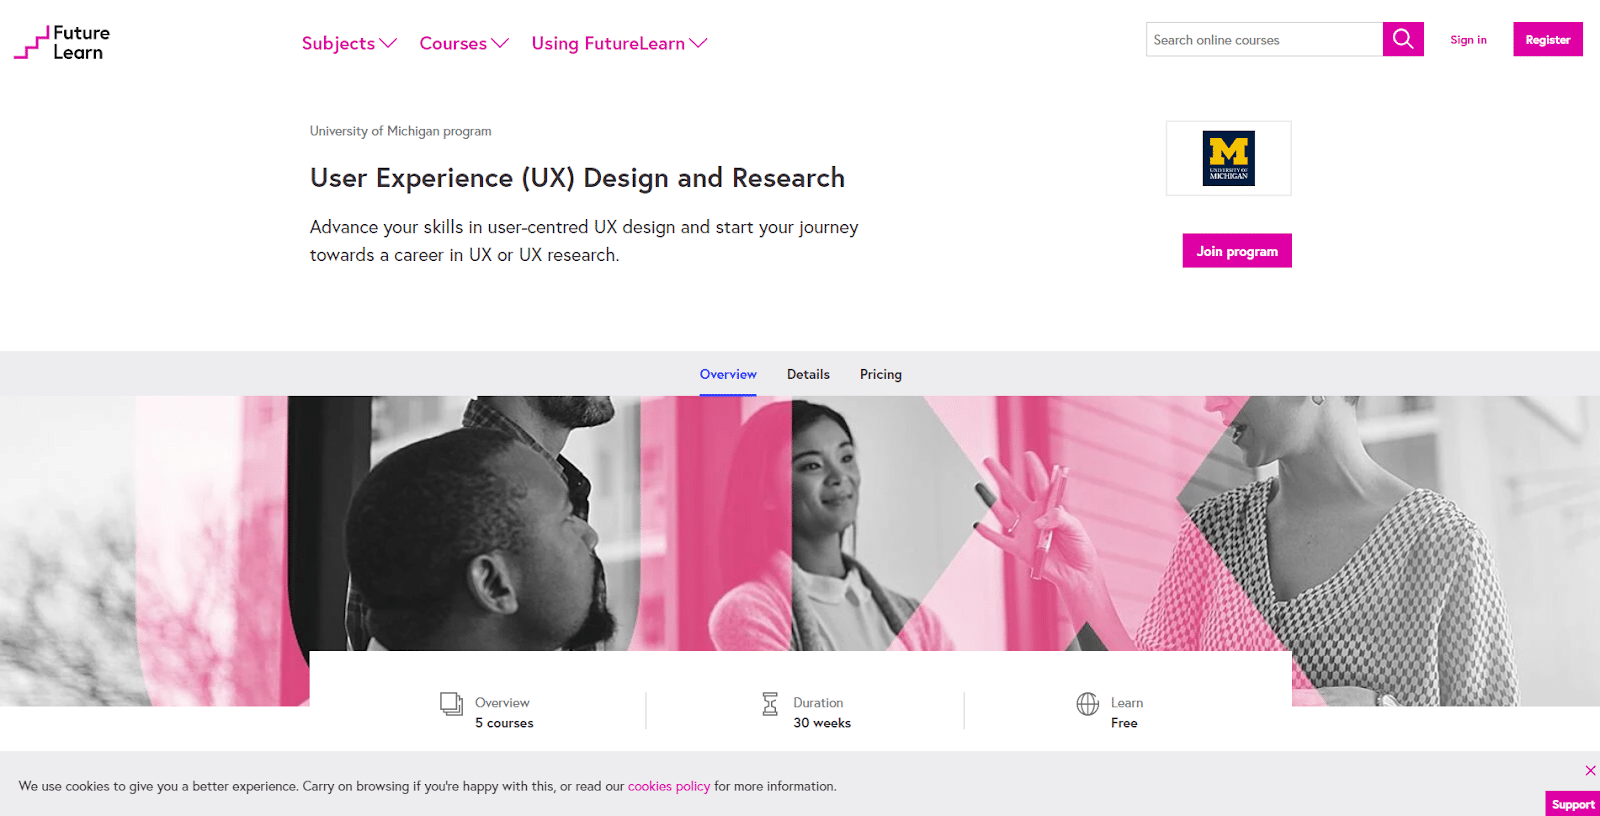 Future Learn - Curso de diseño UX